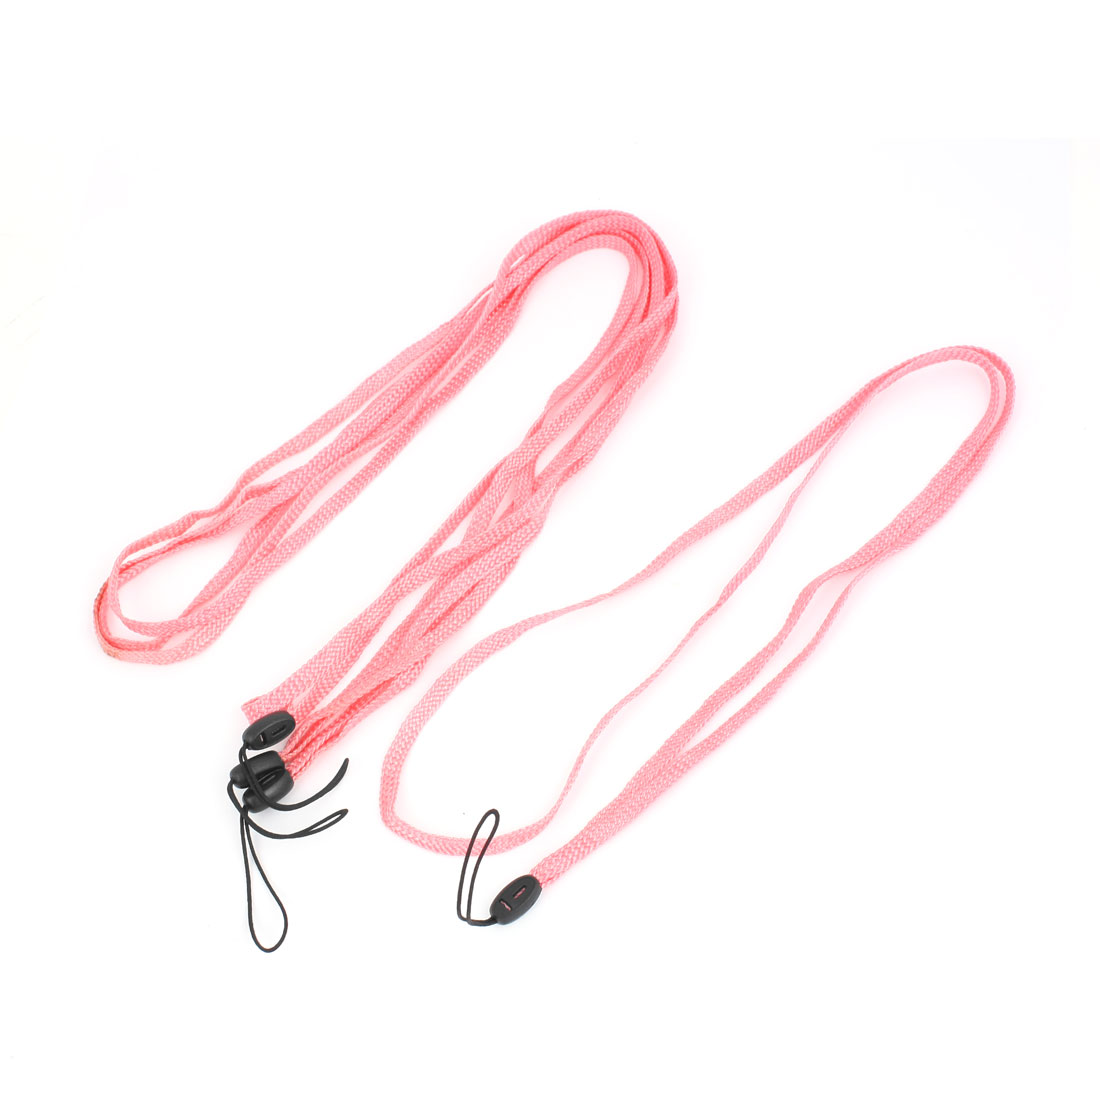 Mobile Cell Phone Camera Braided Band Neck Cord Strap String Pink 4 Pcs